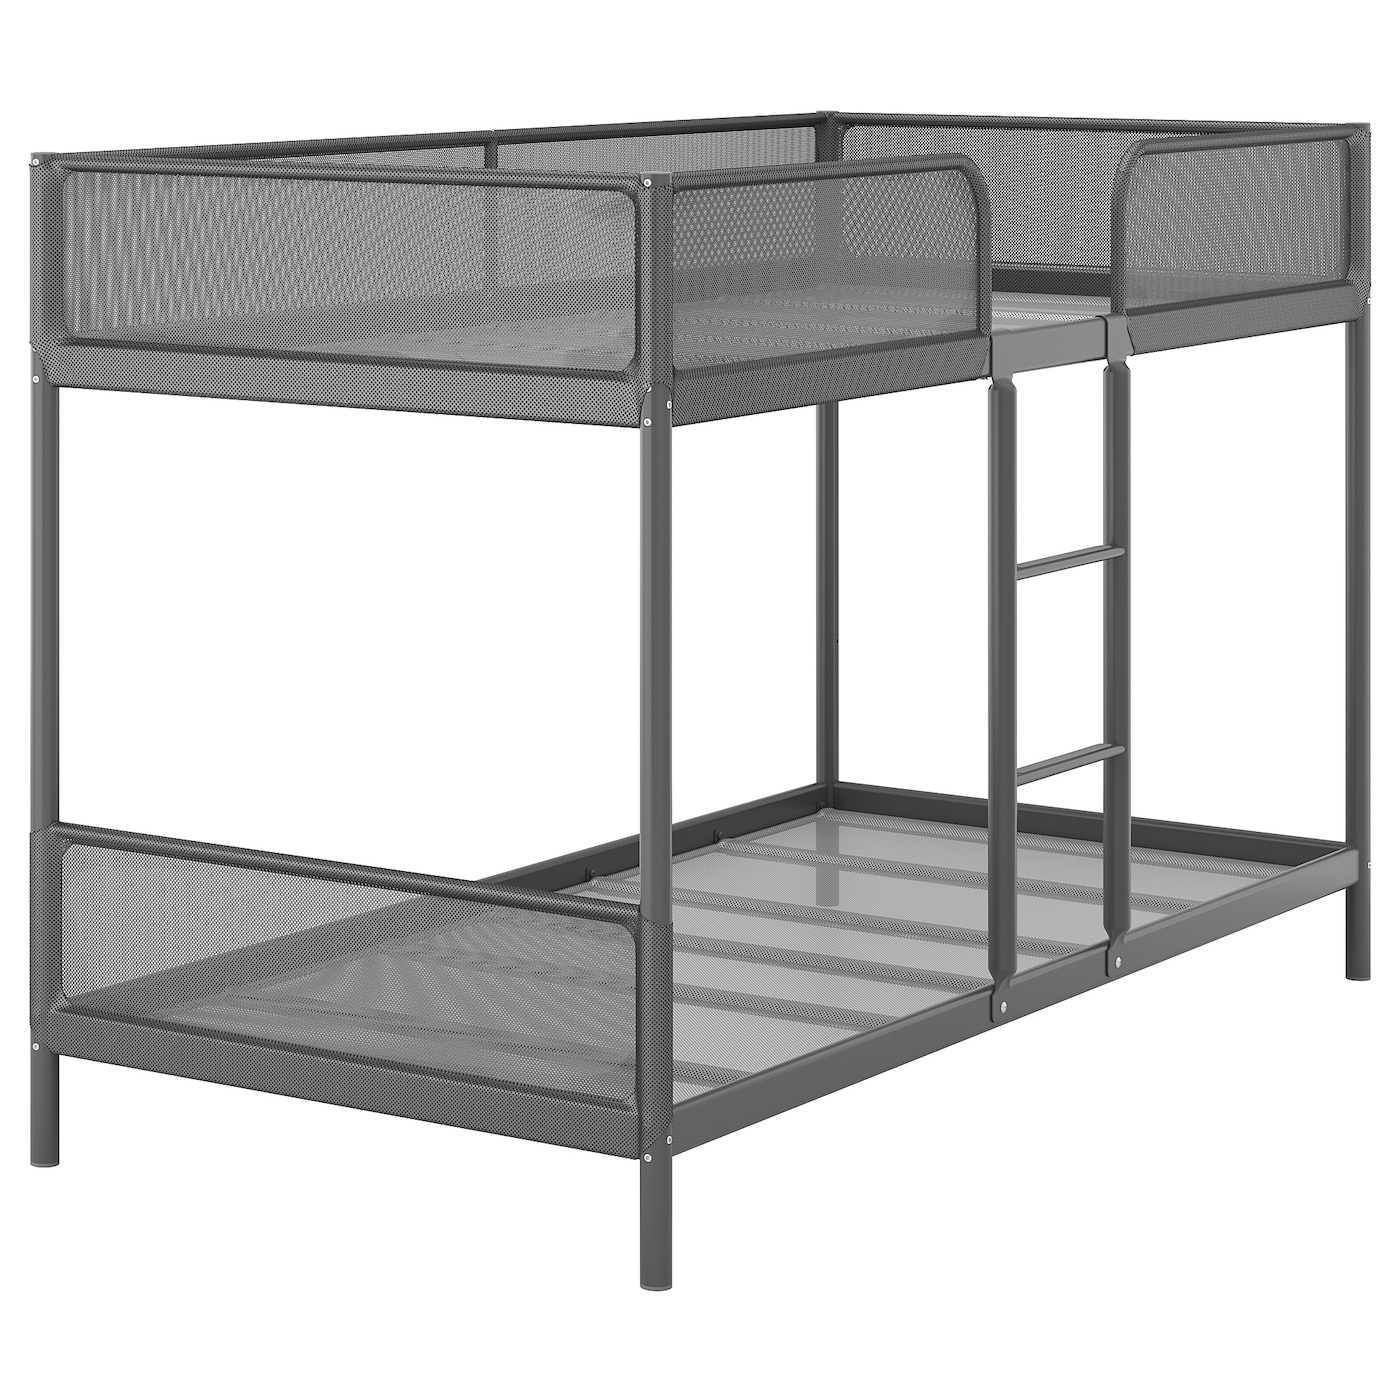 Ikea Tuffing Bunk Bed Frame A Good Solution Where E Is Limited